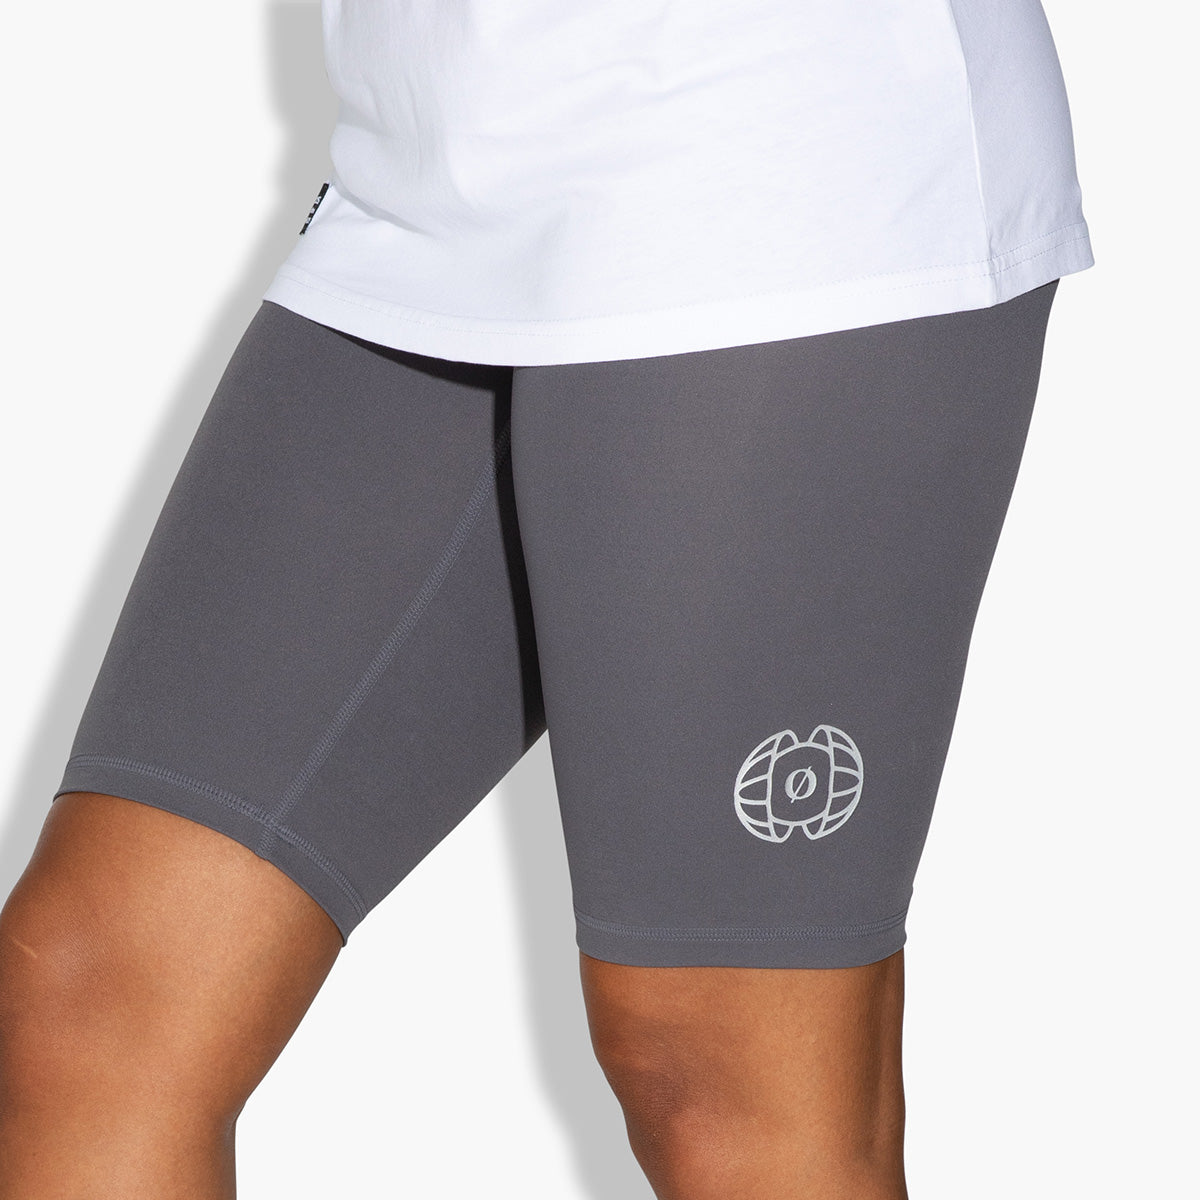 Women's Bike Shorts (Grey)